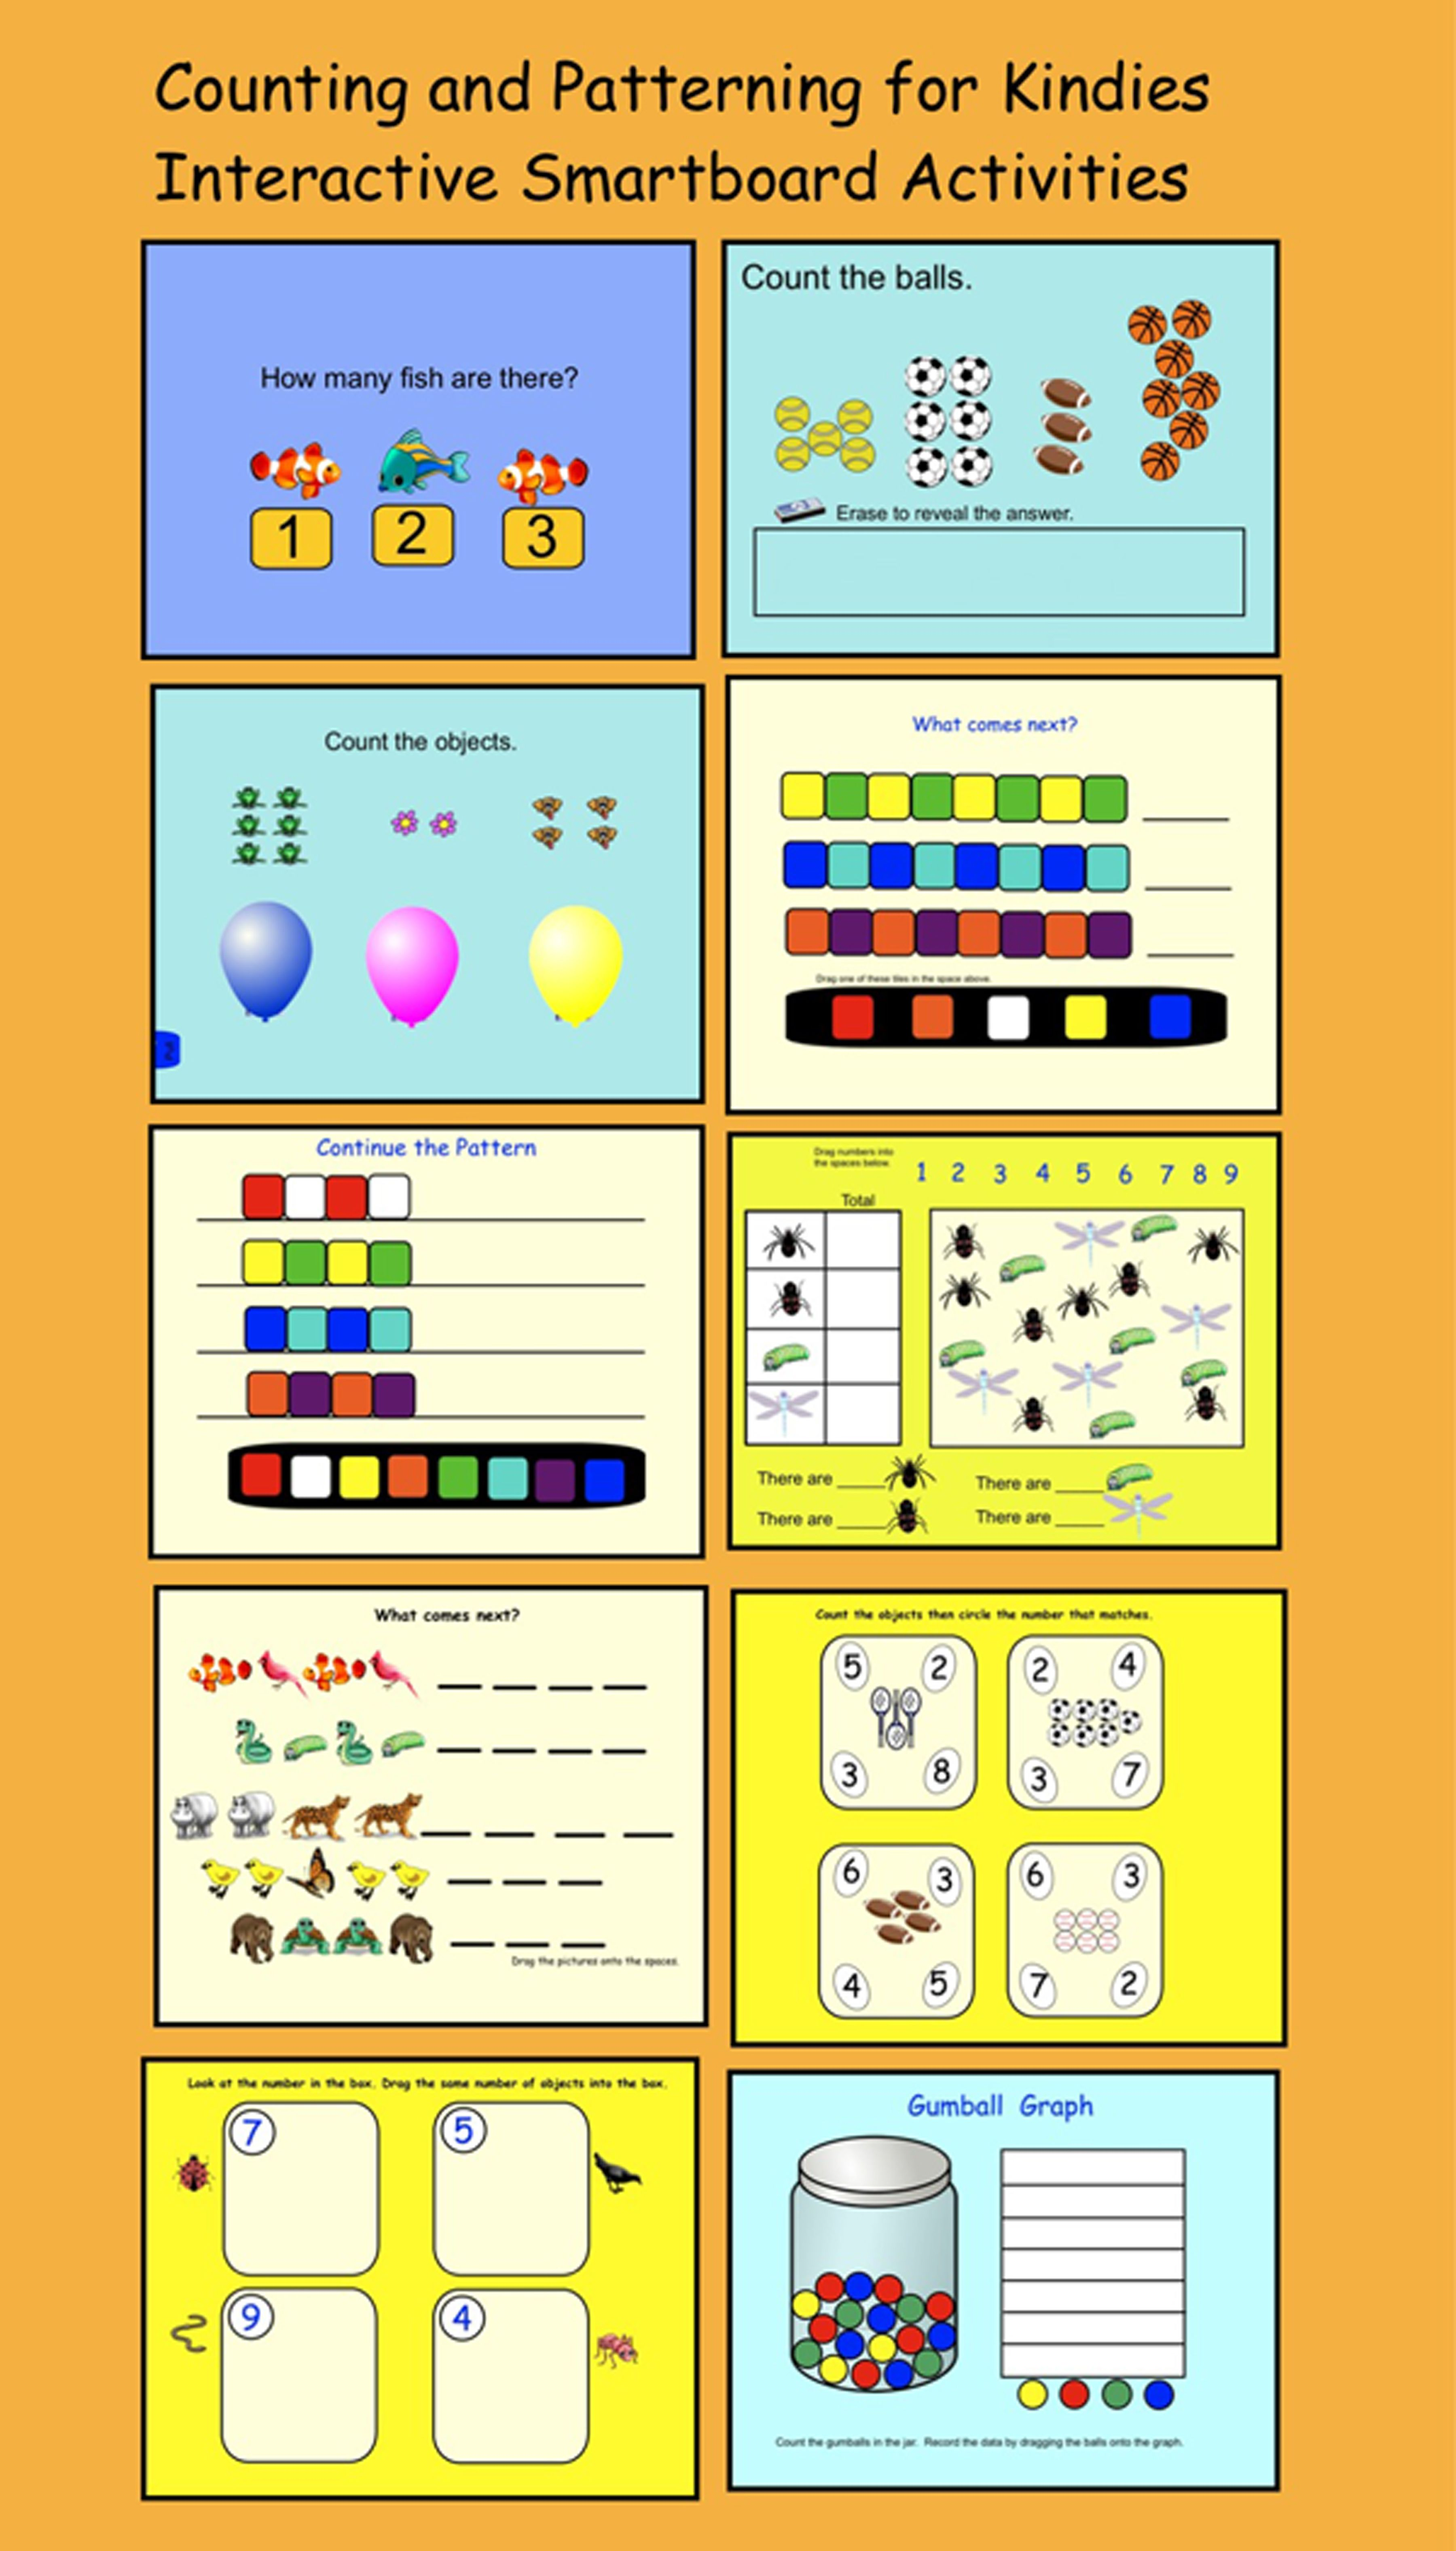 Interactive Smartboard Lesson 10 Pages Of Counting And